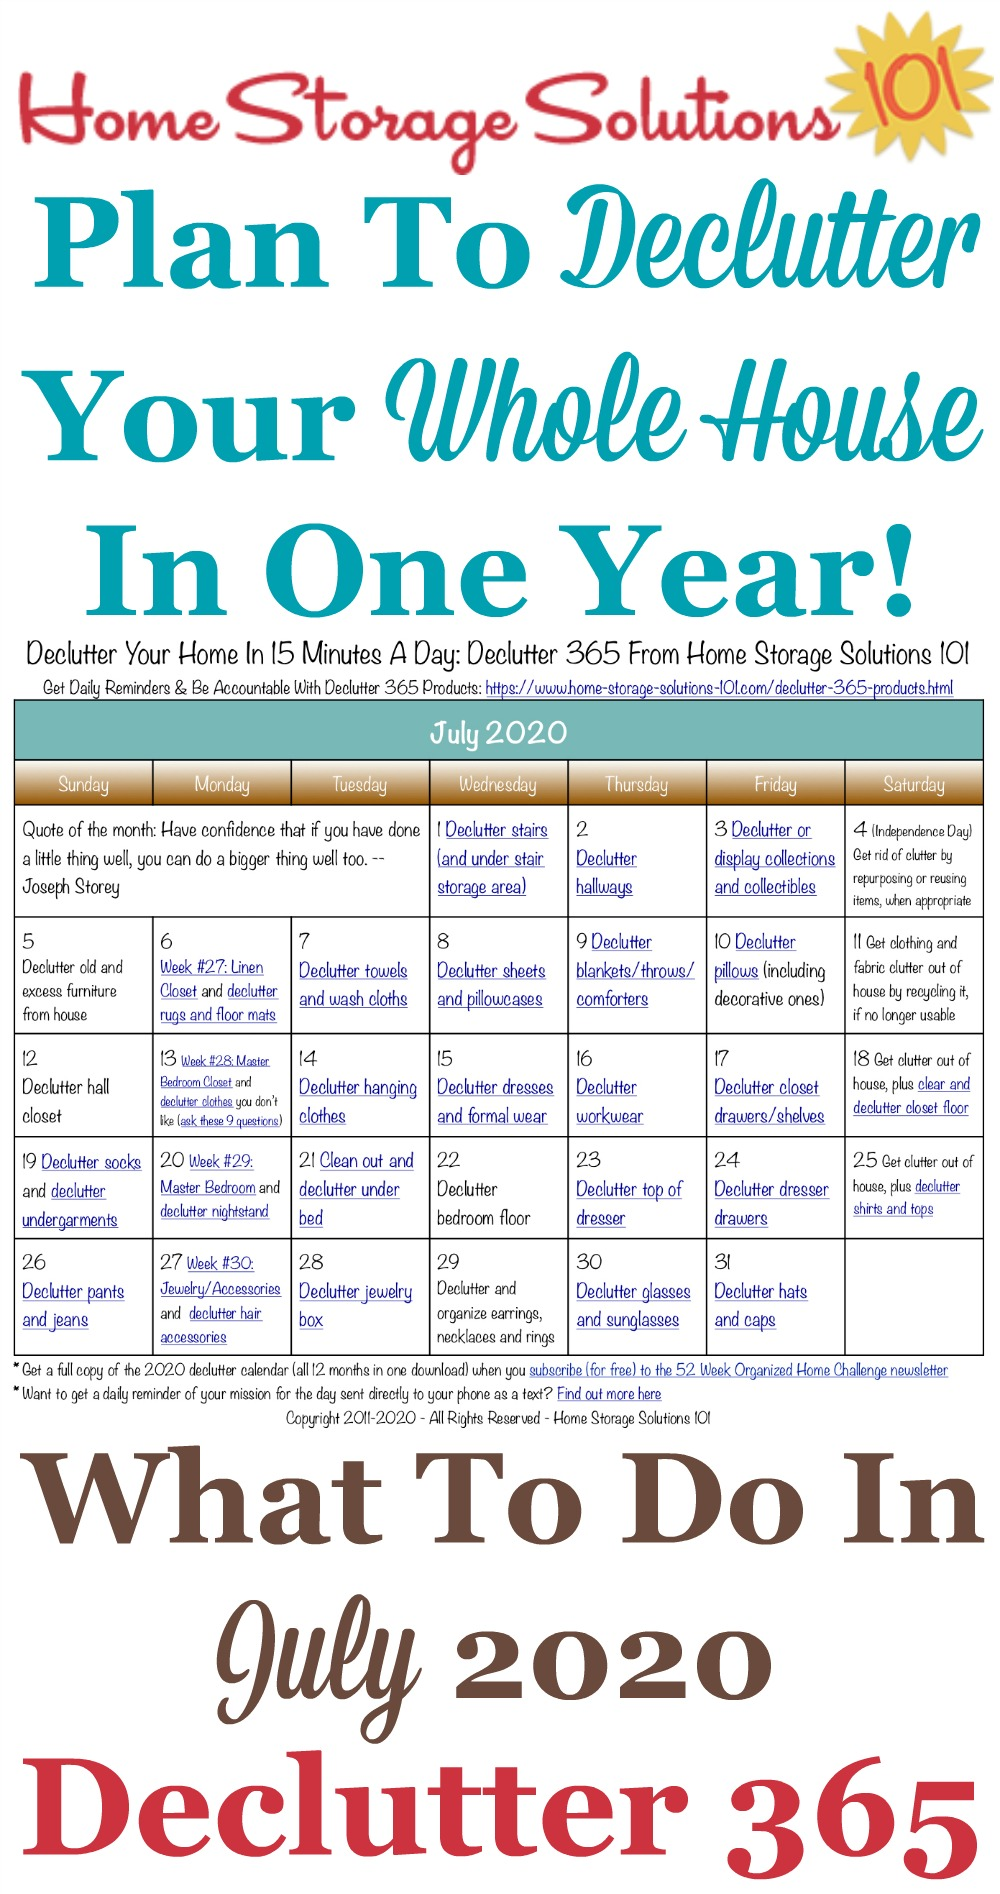 Free printable July 2020 #decluttering calendar with daily 15 minute missions. Follow the entire #Declutter365 plan provided by Home Storage Solutions 101 to #declutter your whole house in a year.